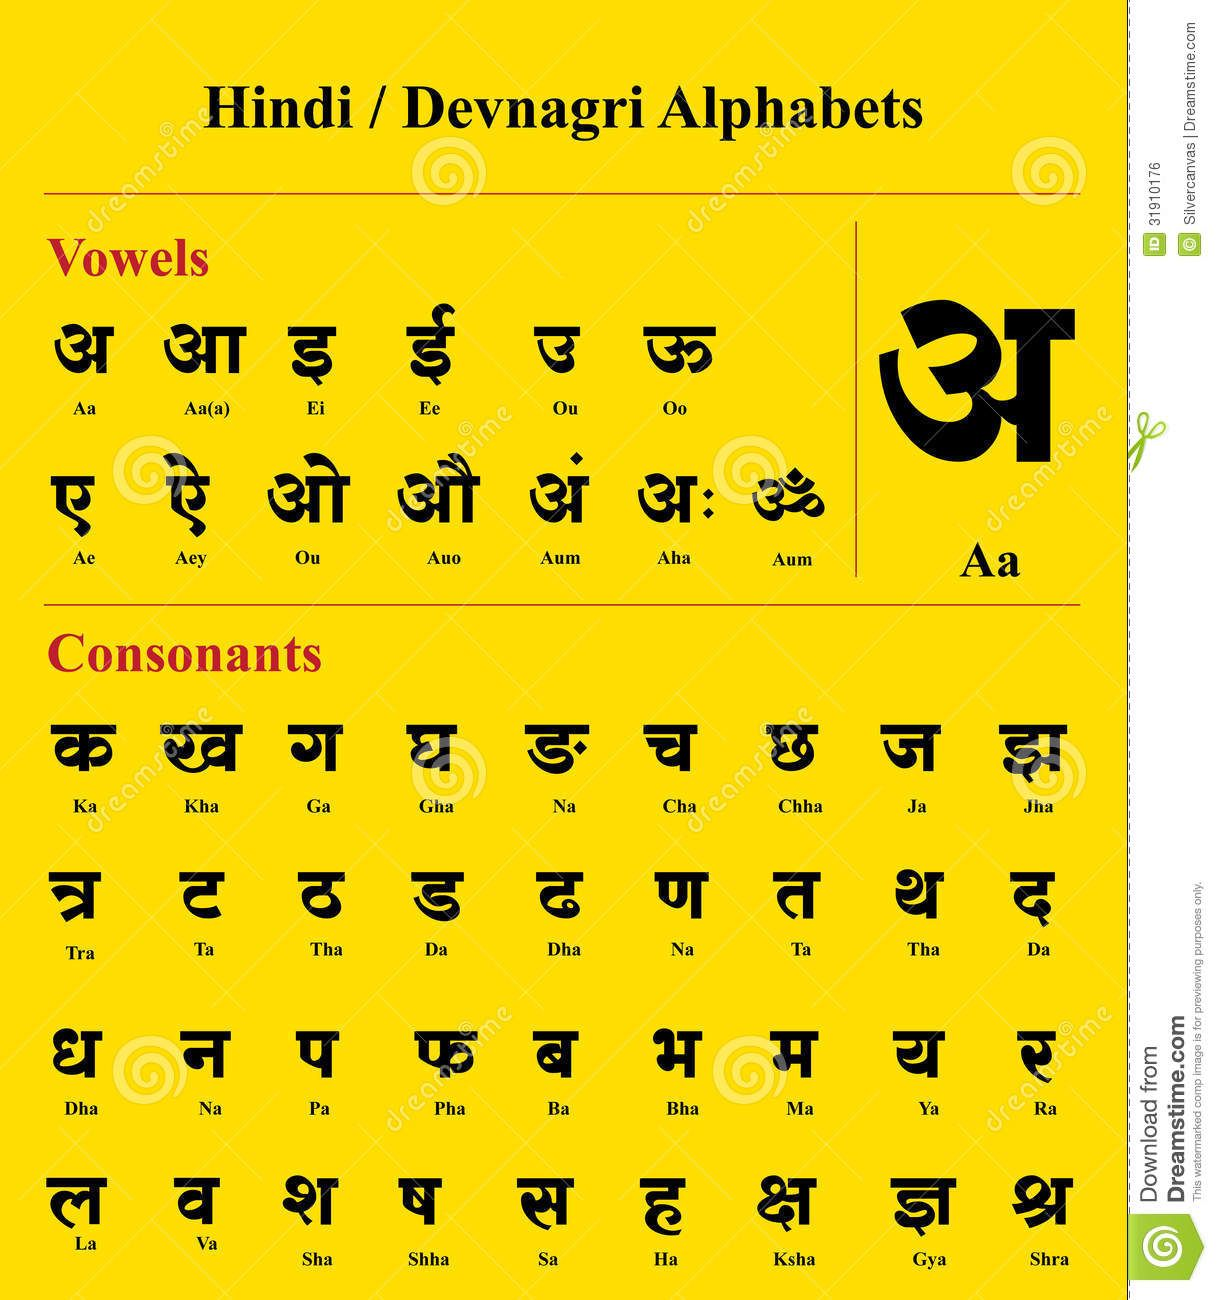 hindi-devnagari-alphabet-devanagari-english-translation ...